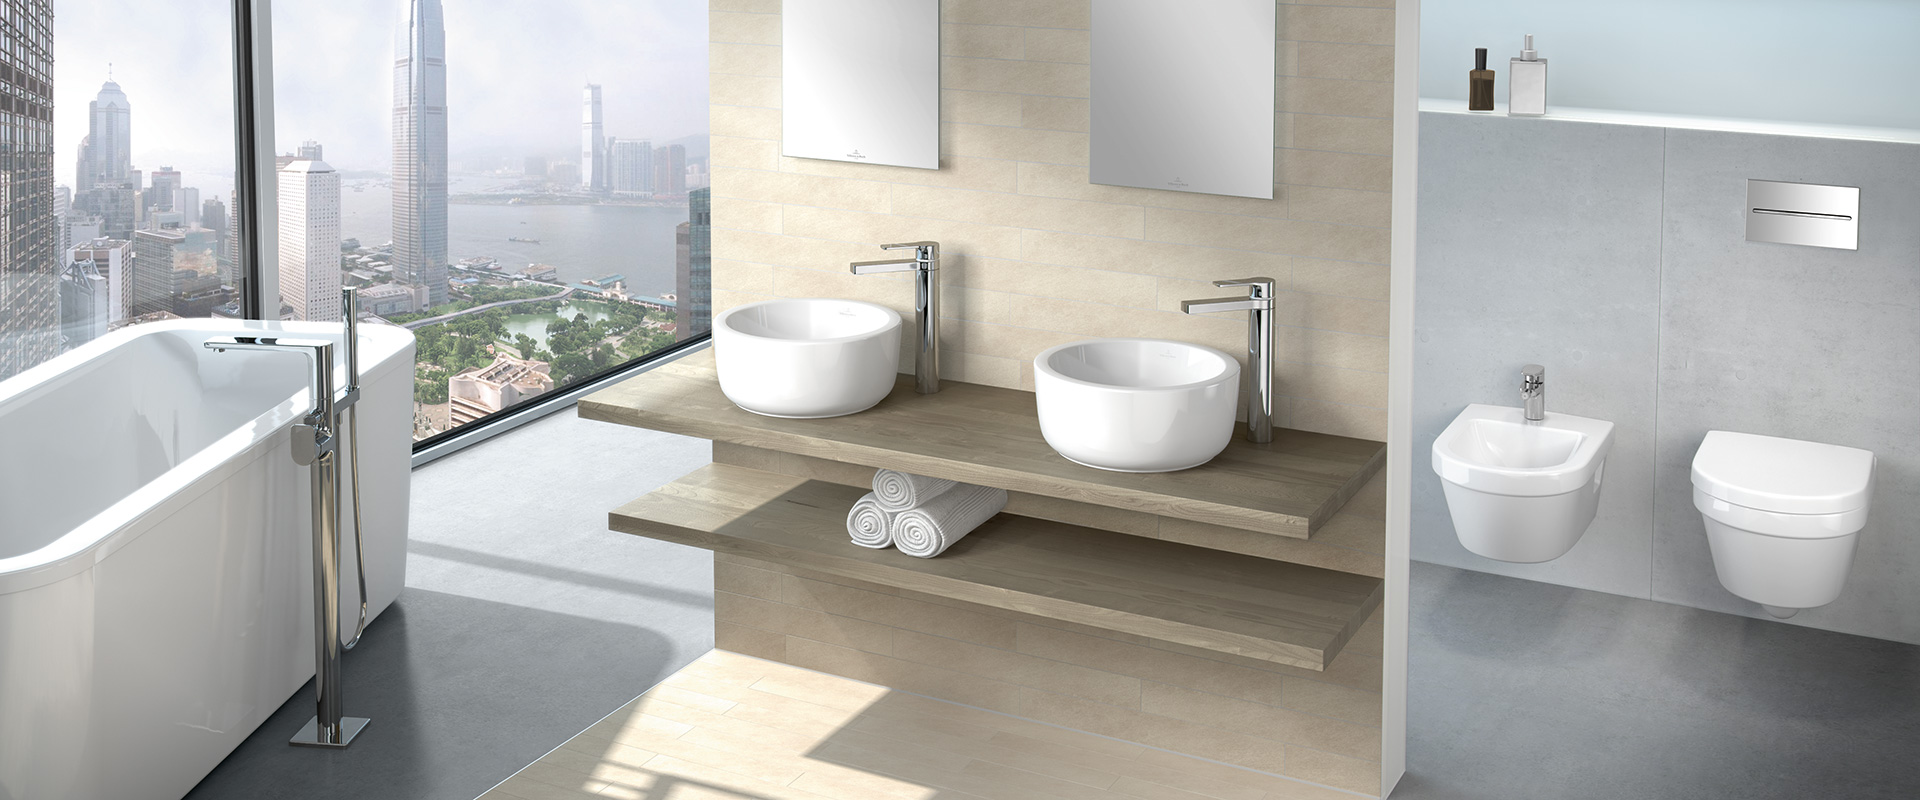 architectura cer - Villeroy And Boch Bathroom Furniture